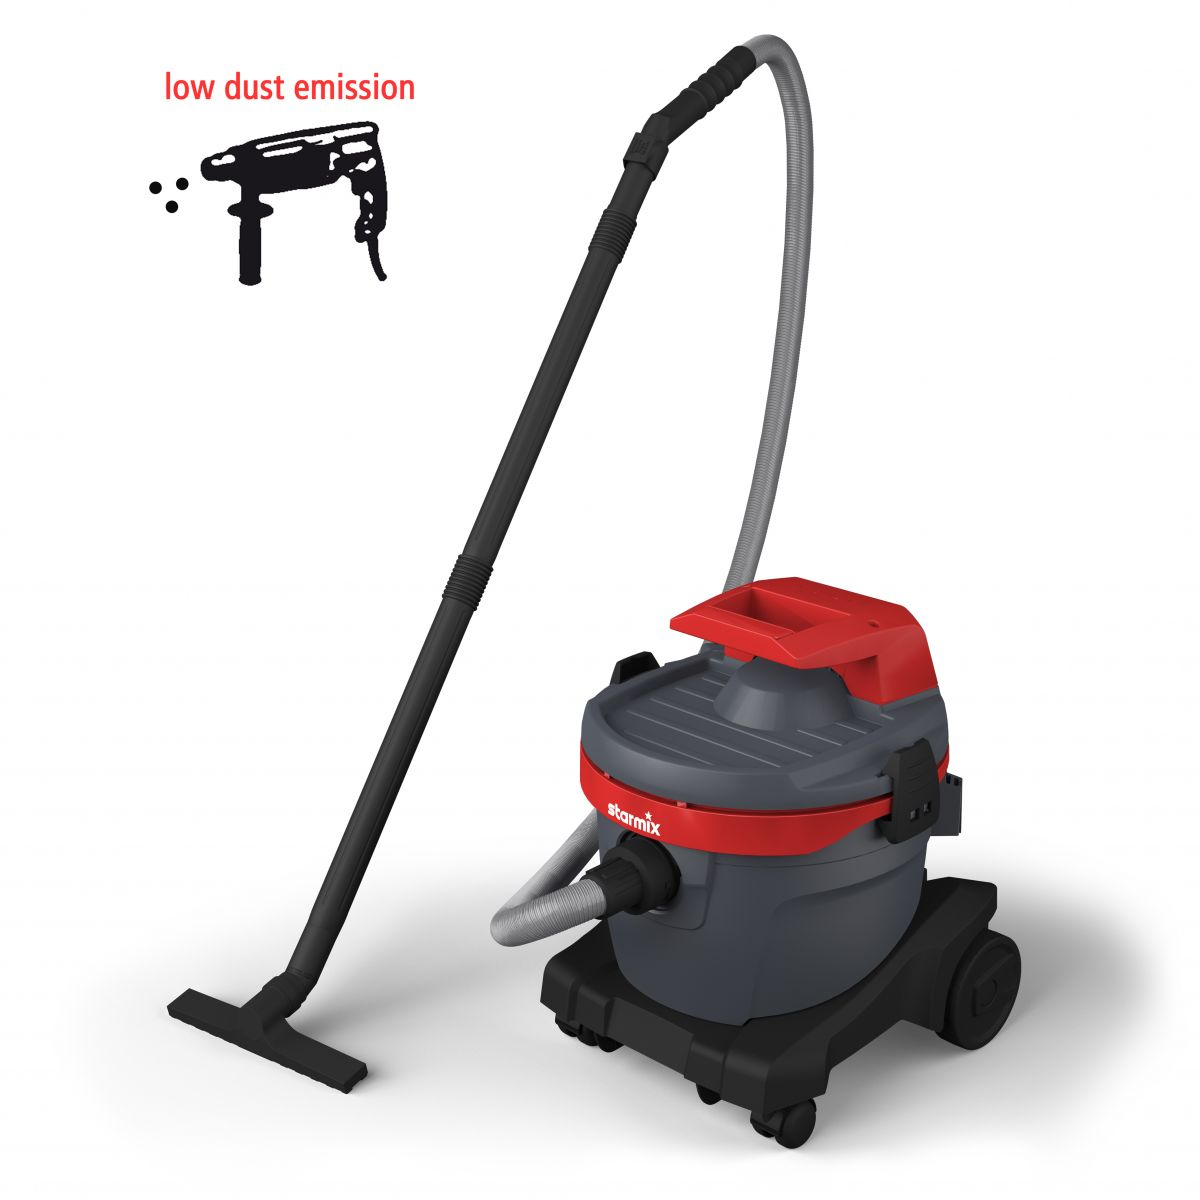 Power tool vacuum cleaner eSwift AR-1220 EHB, Wet-dry vacuum cleaner with filter cleaning